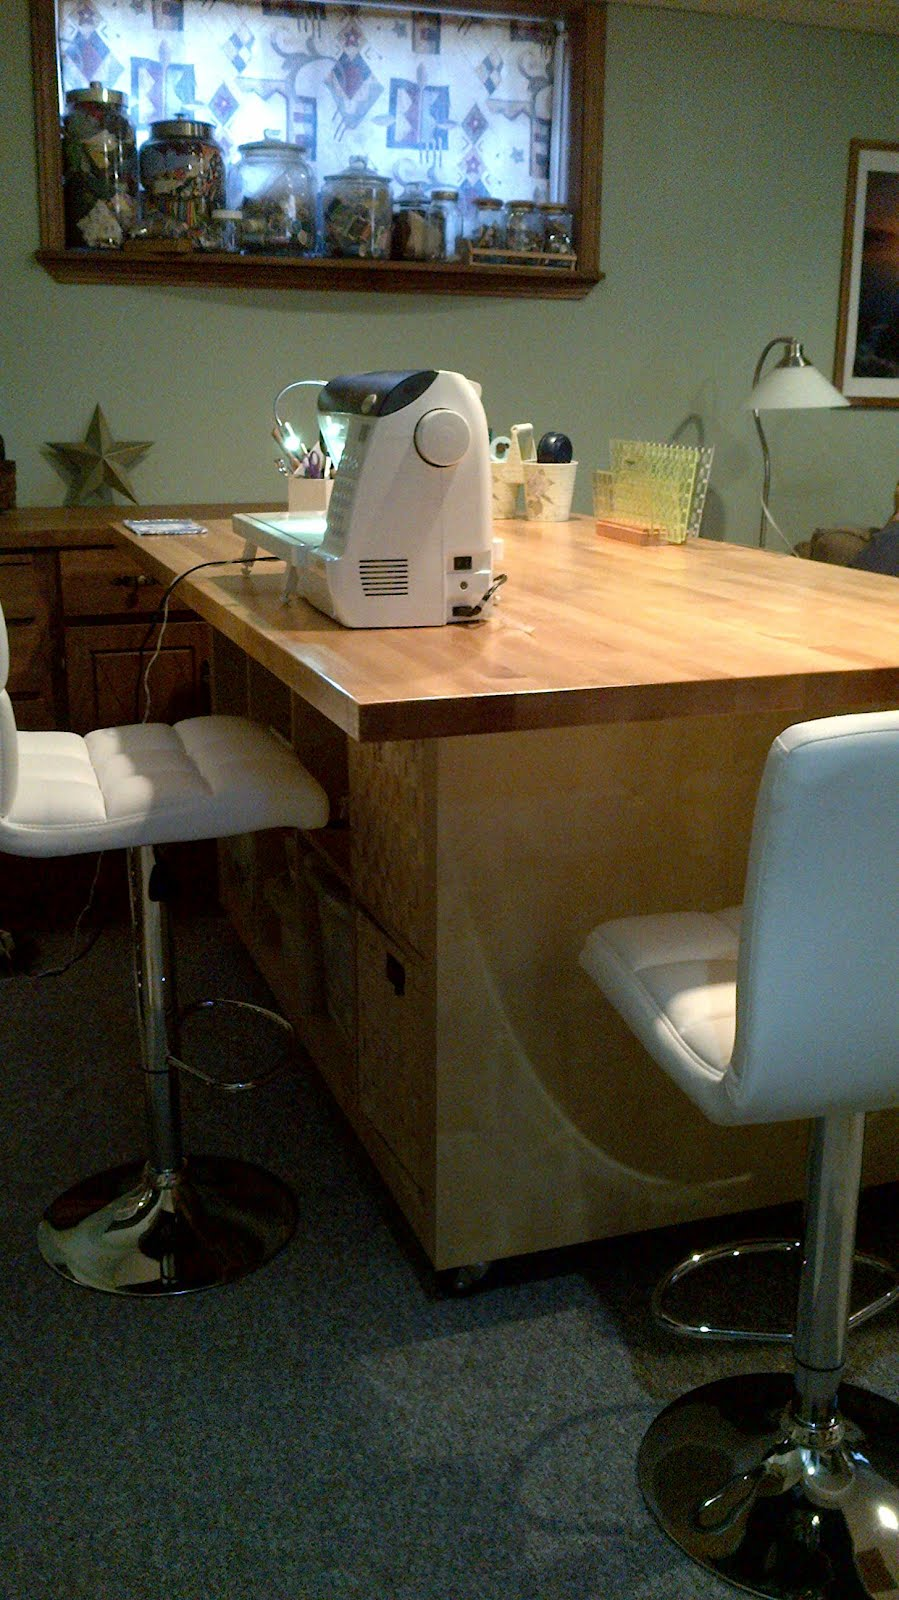 Delicieux The Ultimate Quilting Table. Materials: 2 Ikea Expedit Bookcases, 1 Ikea  Numerar Countertop, 4 Heavy Duty Casters And 2 2x4s